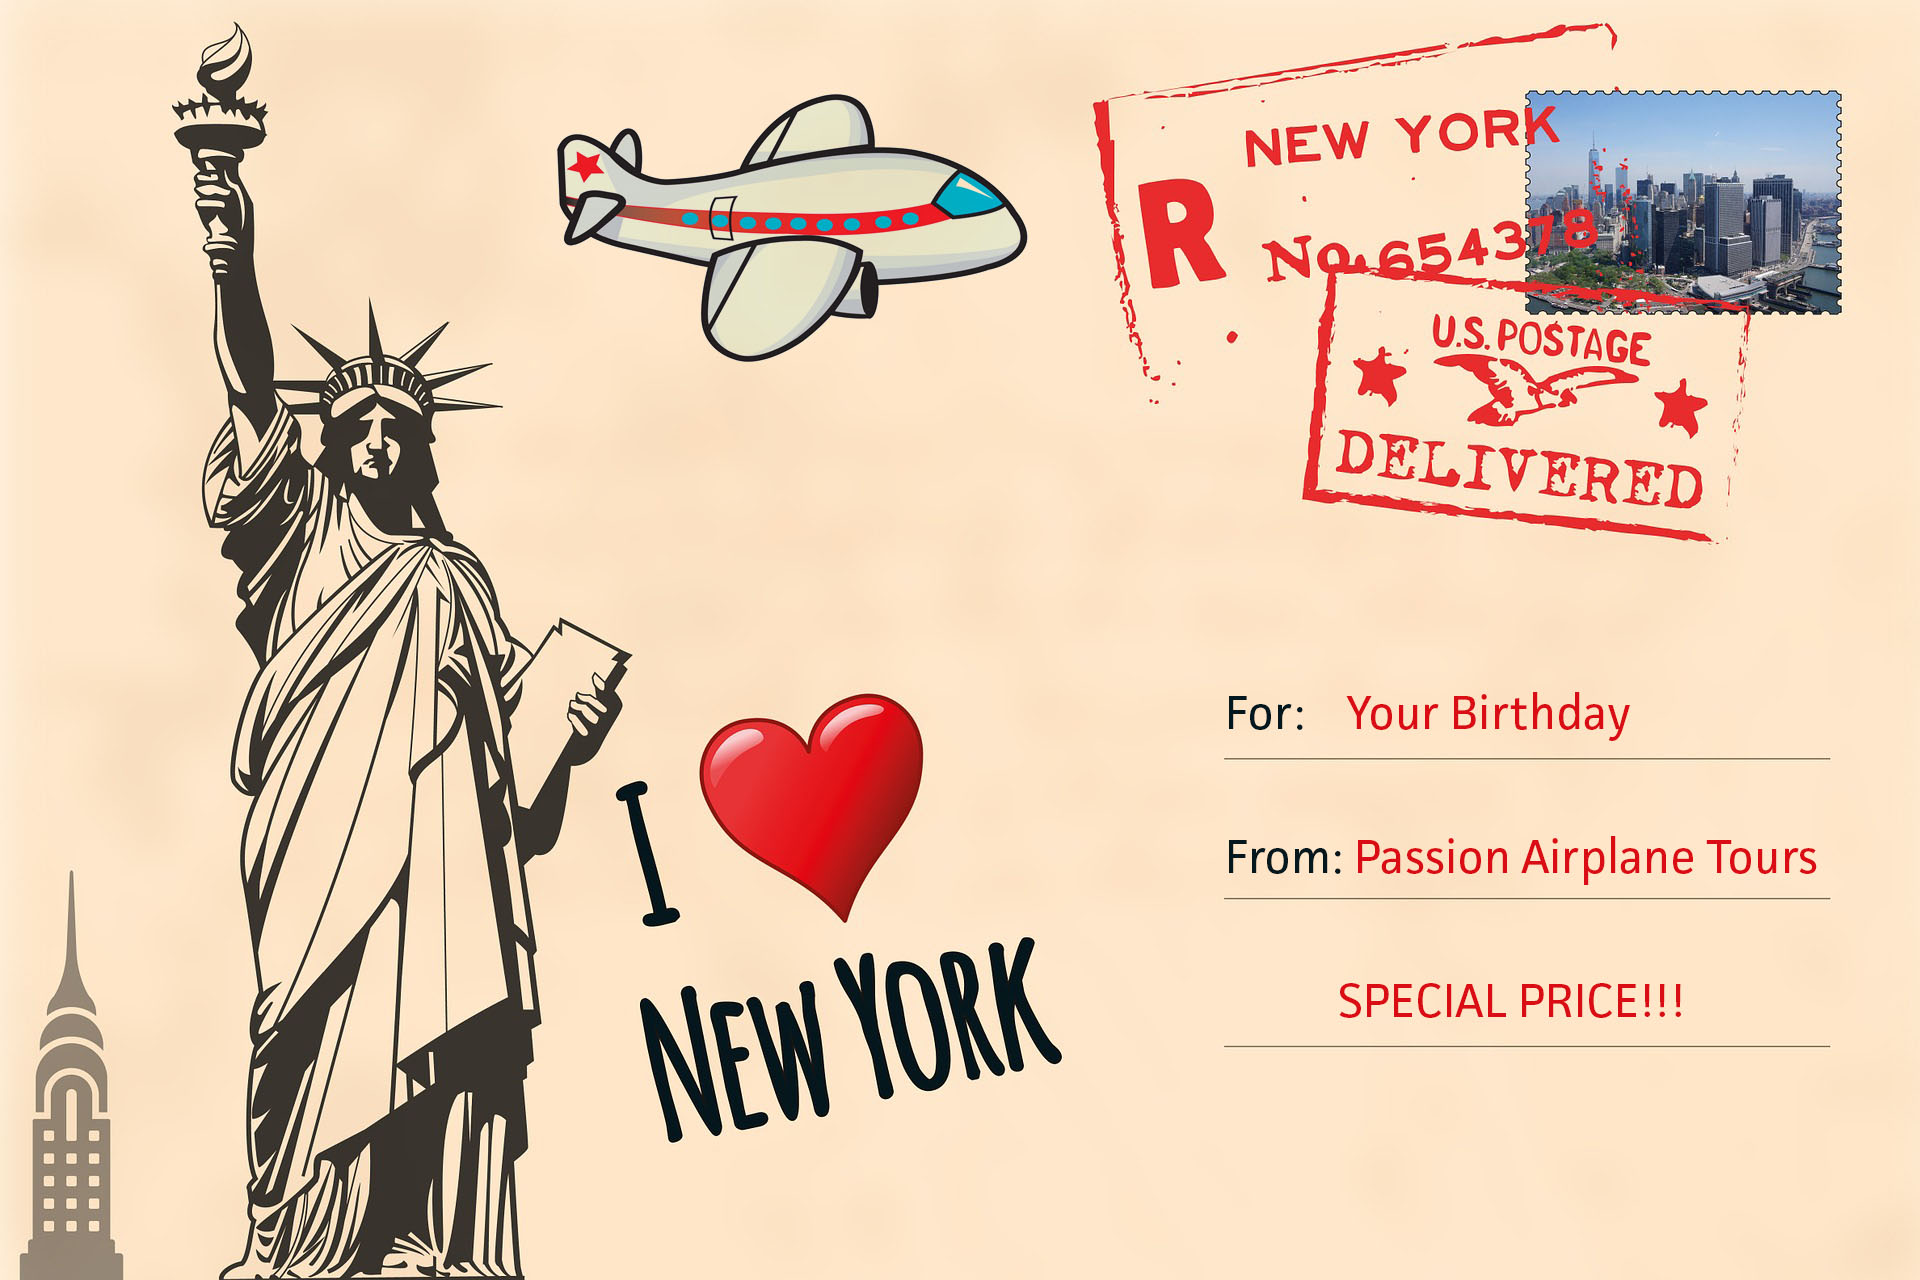 Enjoy the thrill of soaring above New York City with a Passion Airplane Tours plane flight high above New York City to celebrate your birthday.